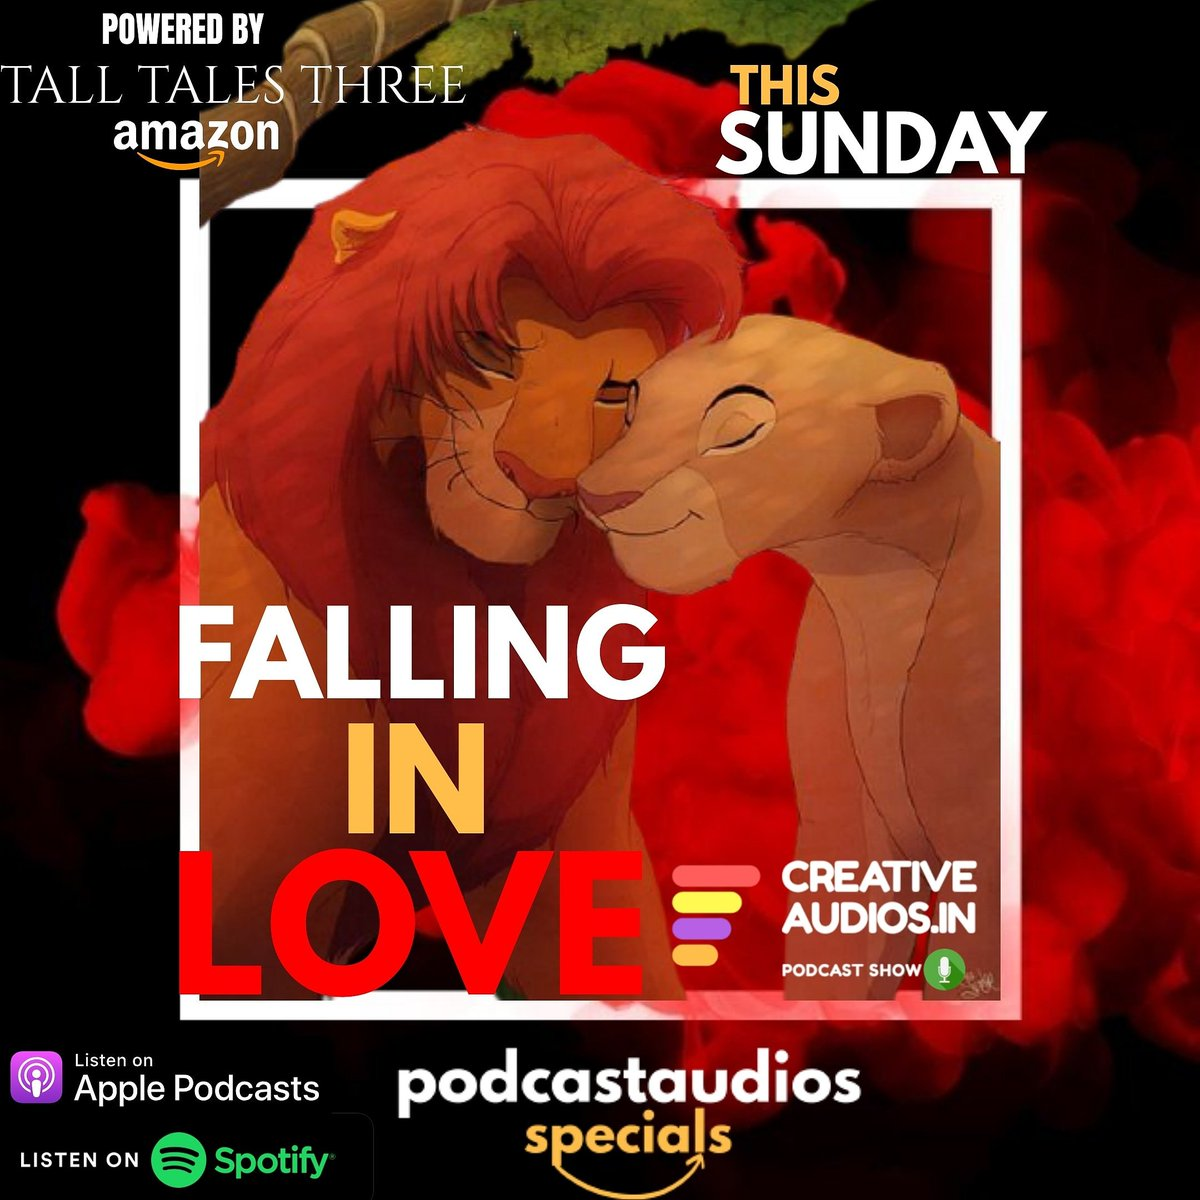 FALLING IN LOVE This Sunday on @PodcastAudios  #podcastsofinstagram #podcast #podcasts #podcastersofinstagram #podcastlife #podcasting #podcaster #podcastshow #podcastlove #applepodcasts #podcastmovement #podcastinglife #podcasters #podcastaddict #spotifypodcast #spotify https://t.co/jqSgviSlpu